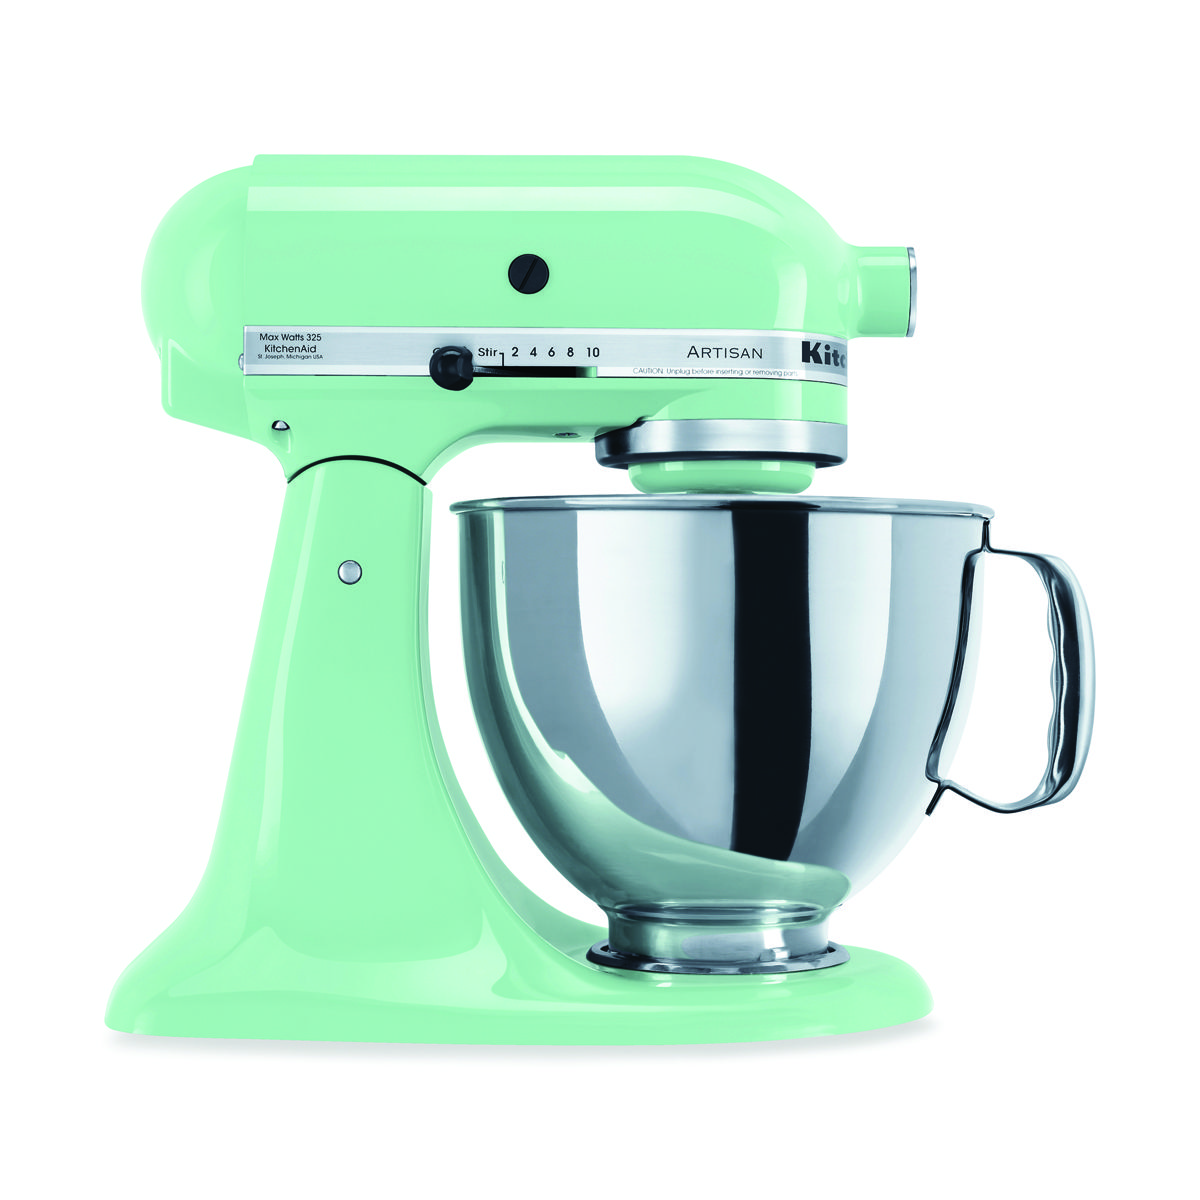 How can you NOT register for a KitchenAid Stand Mixer? This ...